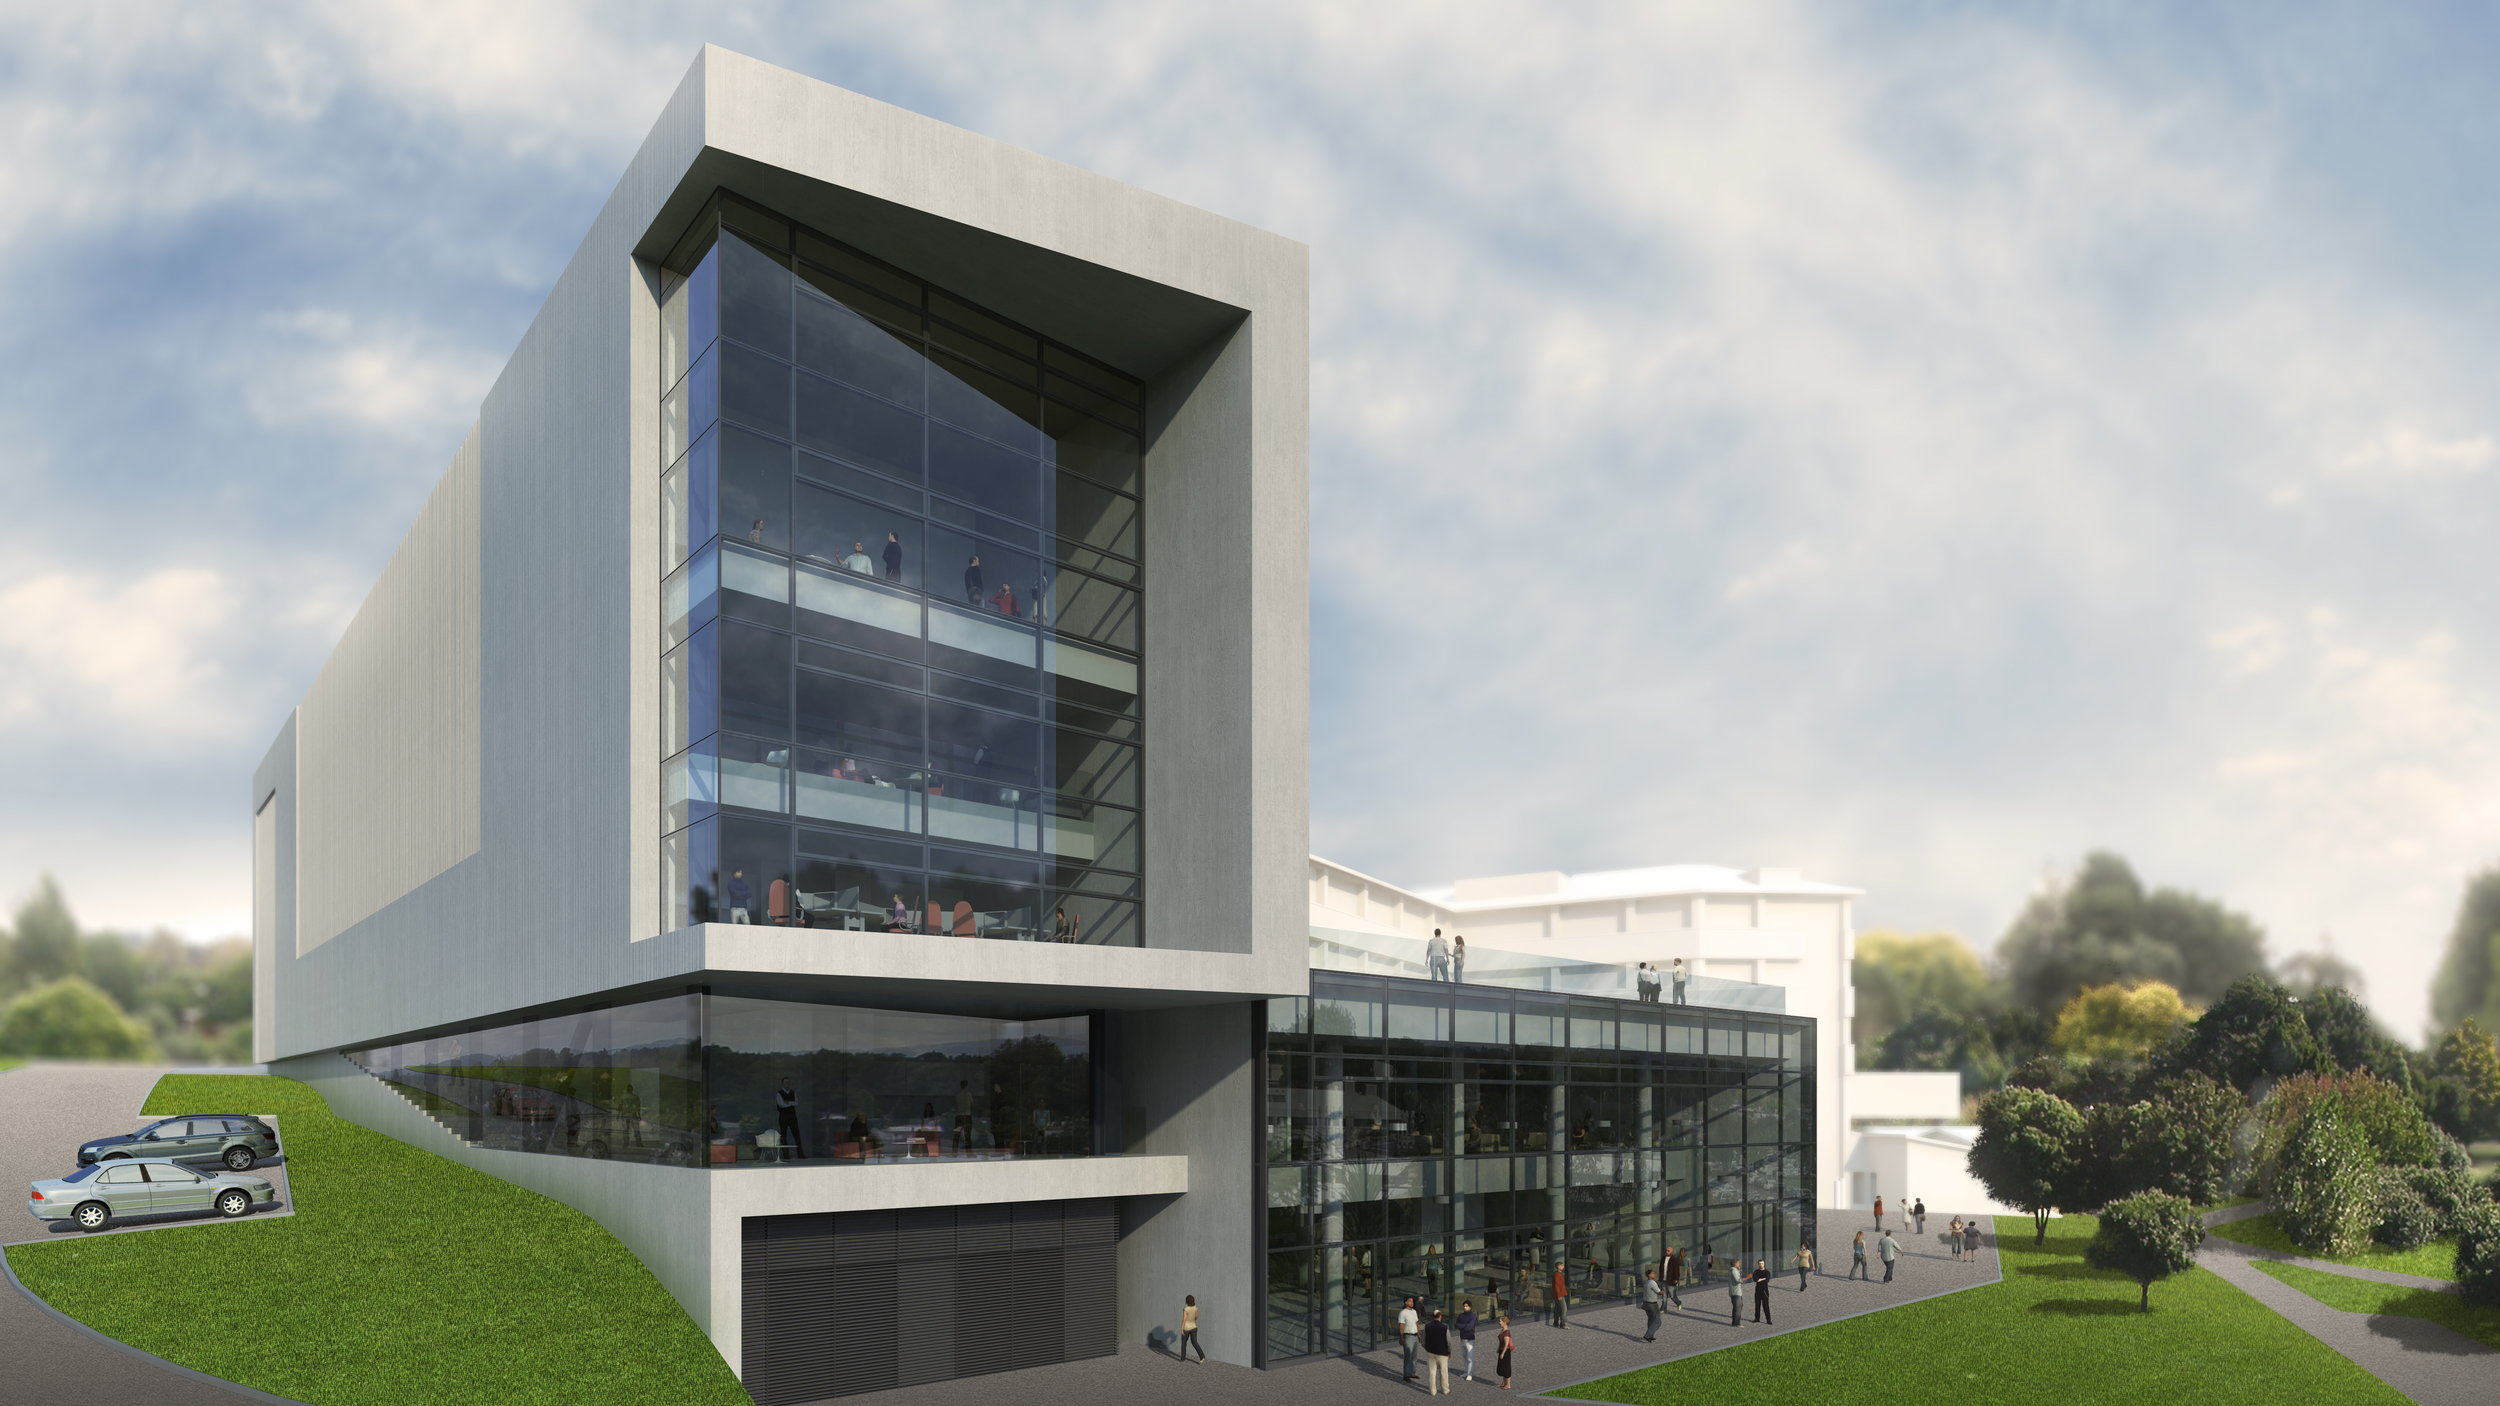 THE UNIVERSITY OF WAIKATO - LAW AND MANAGEMENT BUILDING